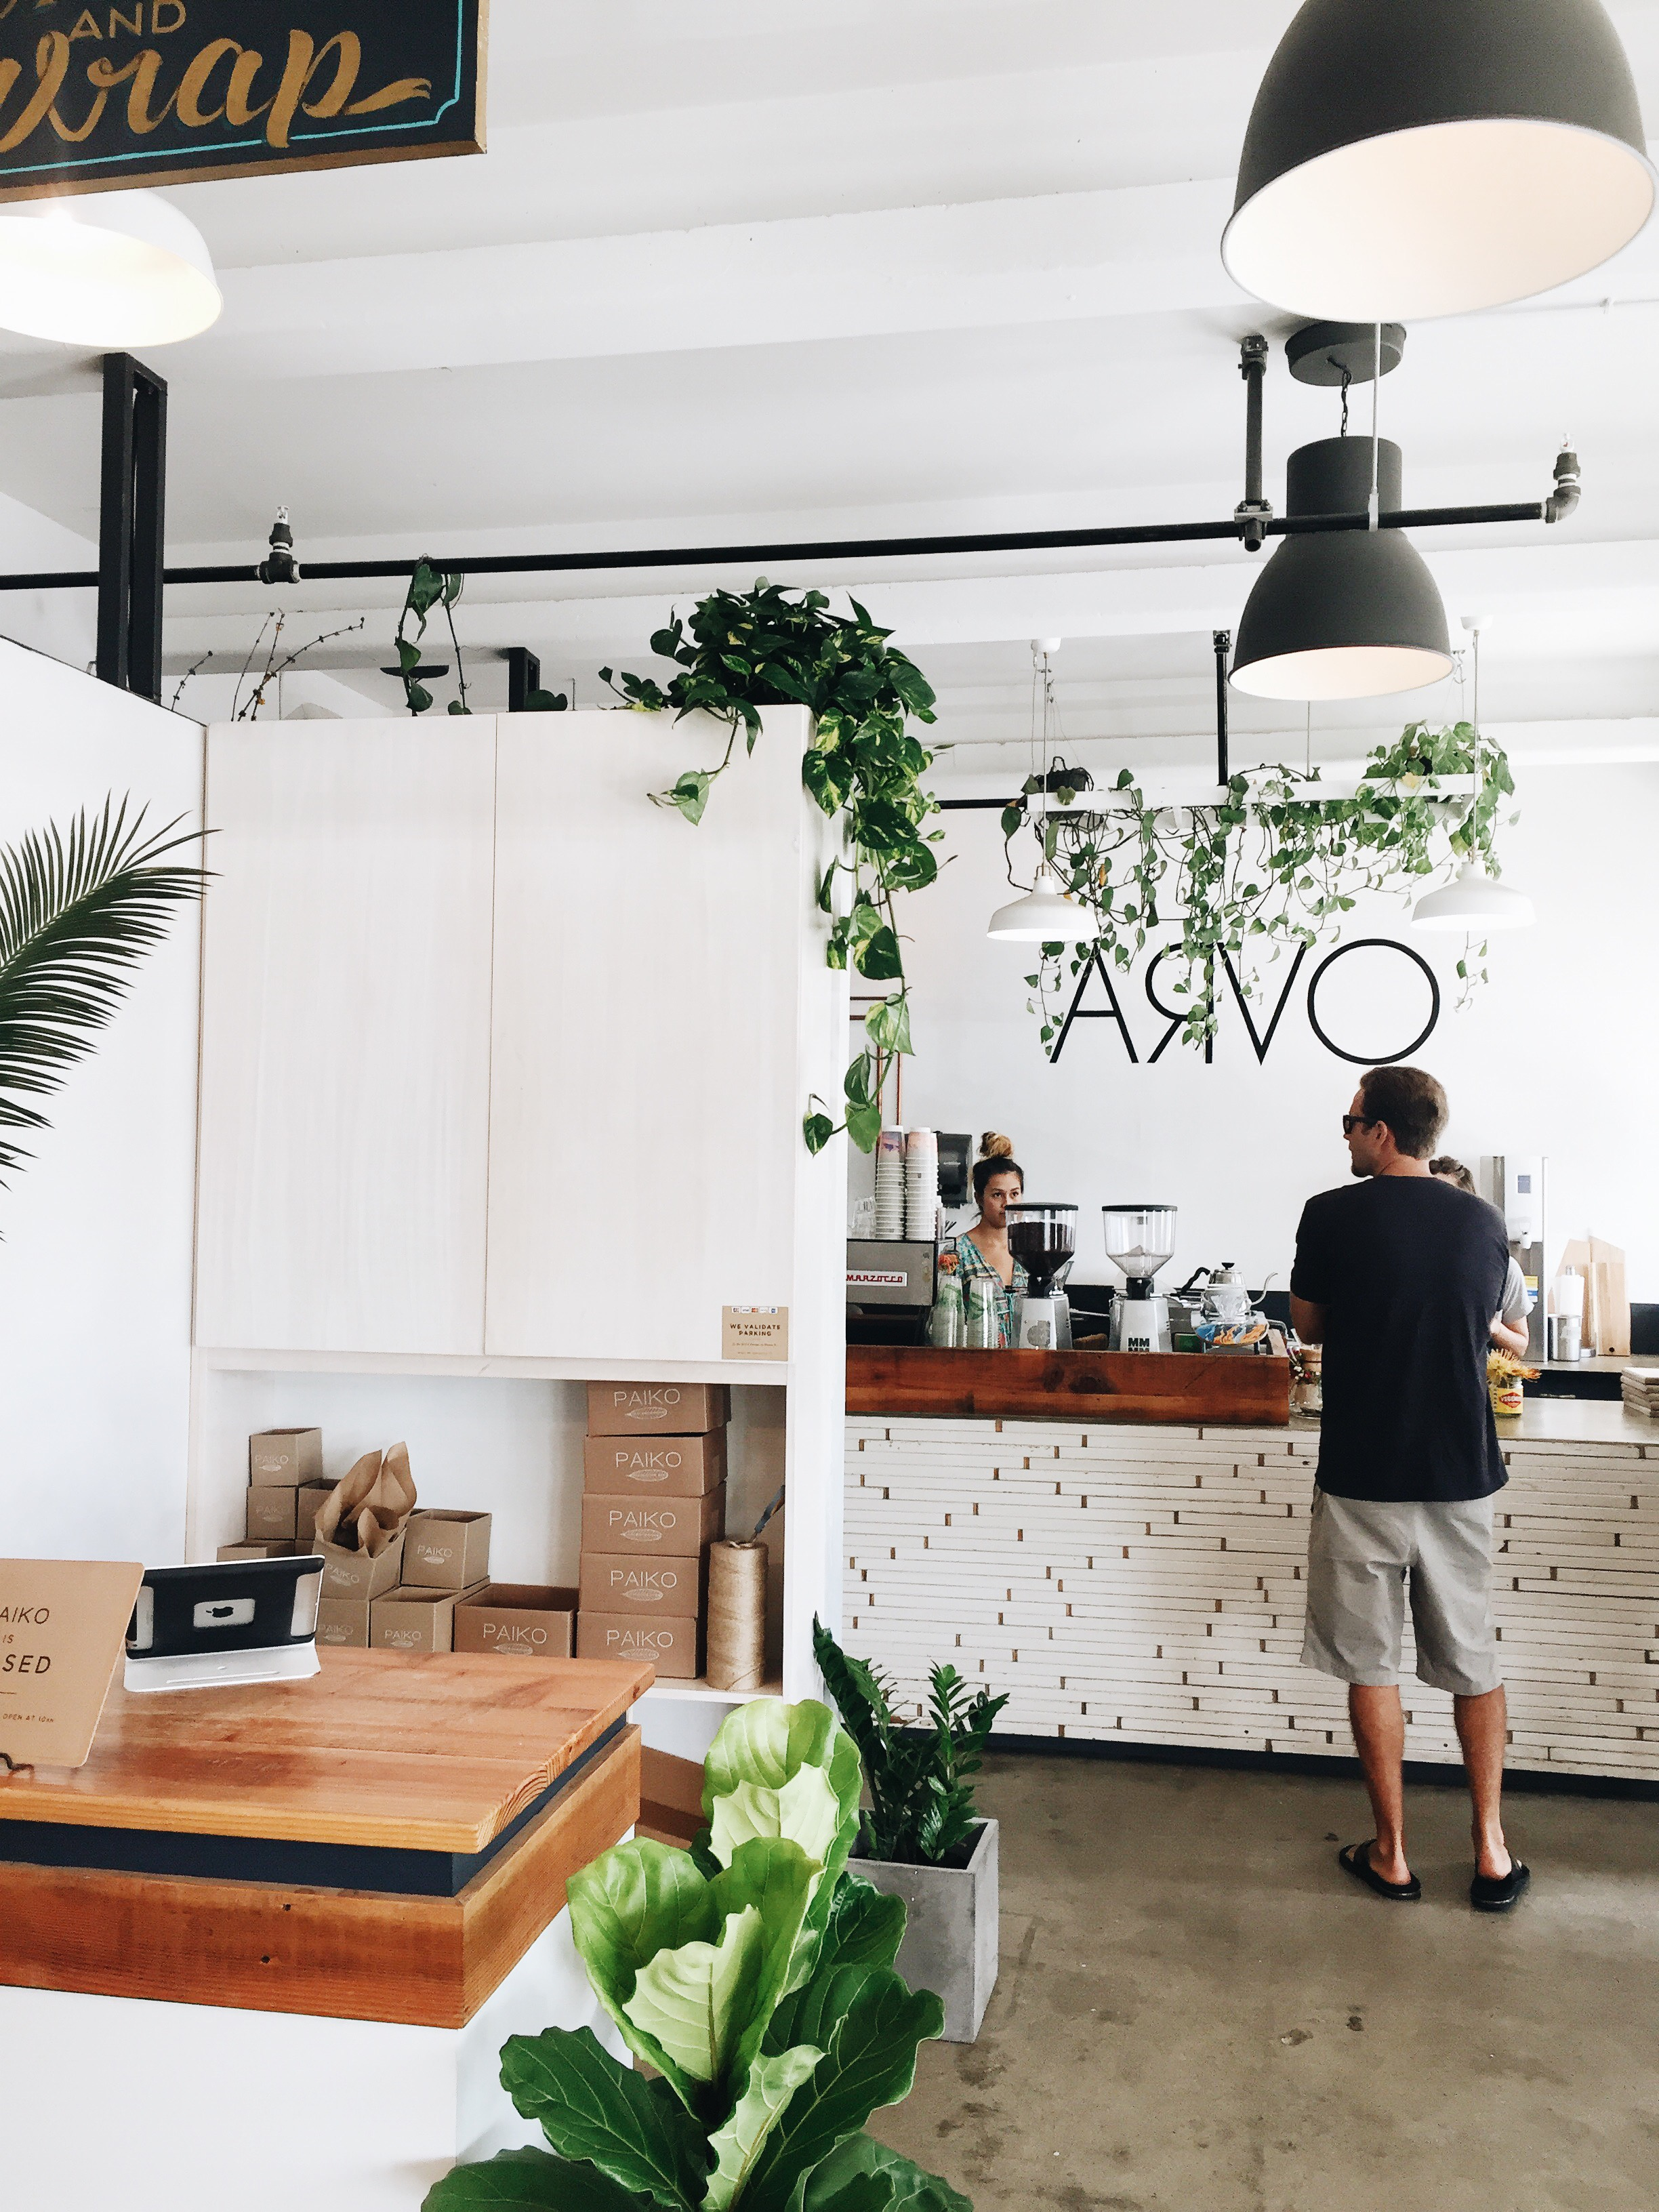 Arvo Coffee | Travel Guide To Oahu, Hawaii | Best Coffee Shops on Oahu | Coffee In Hawaii via @elanaloo + elanaloo.com